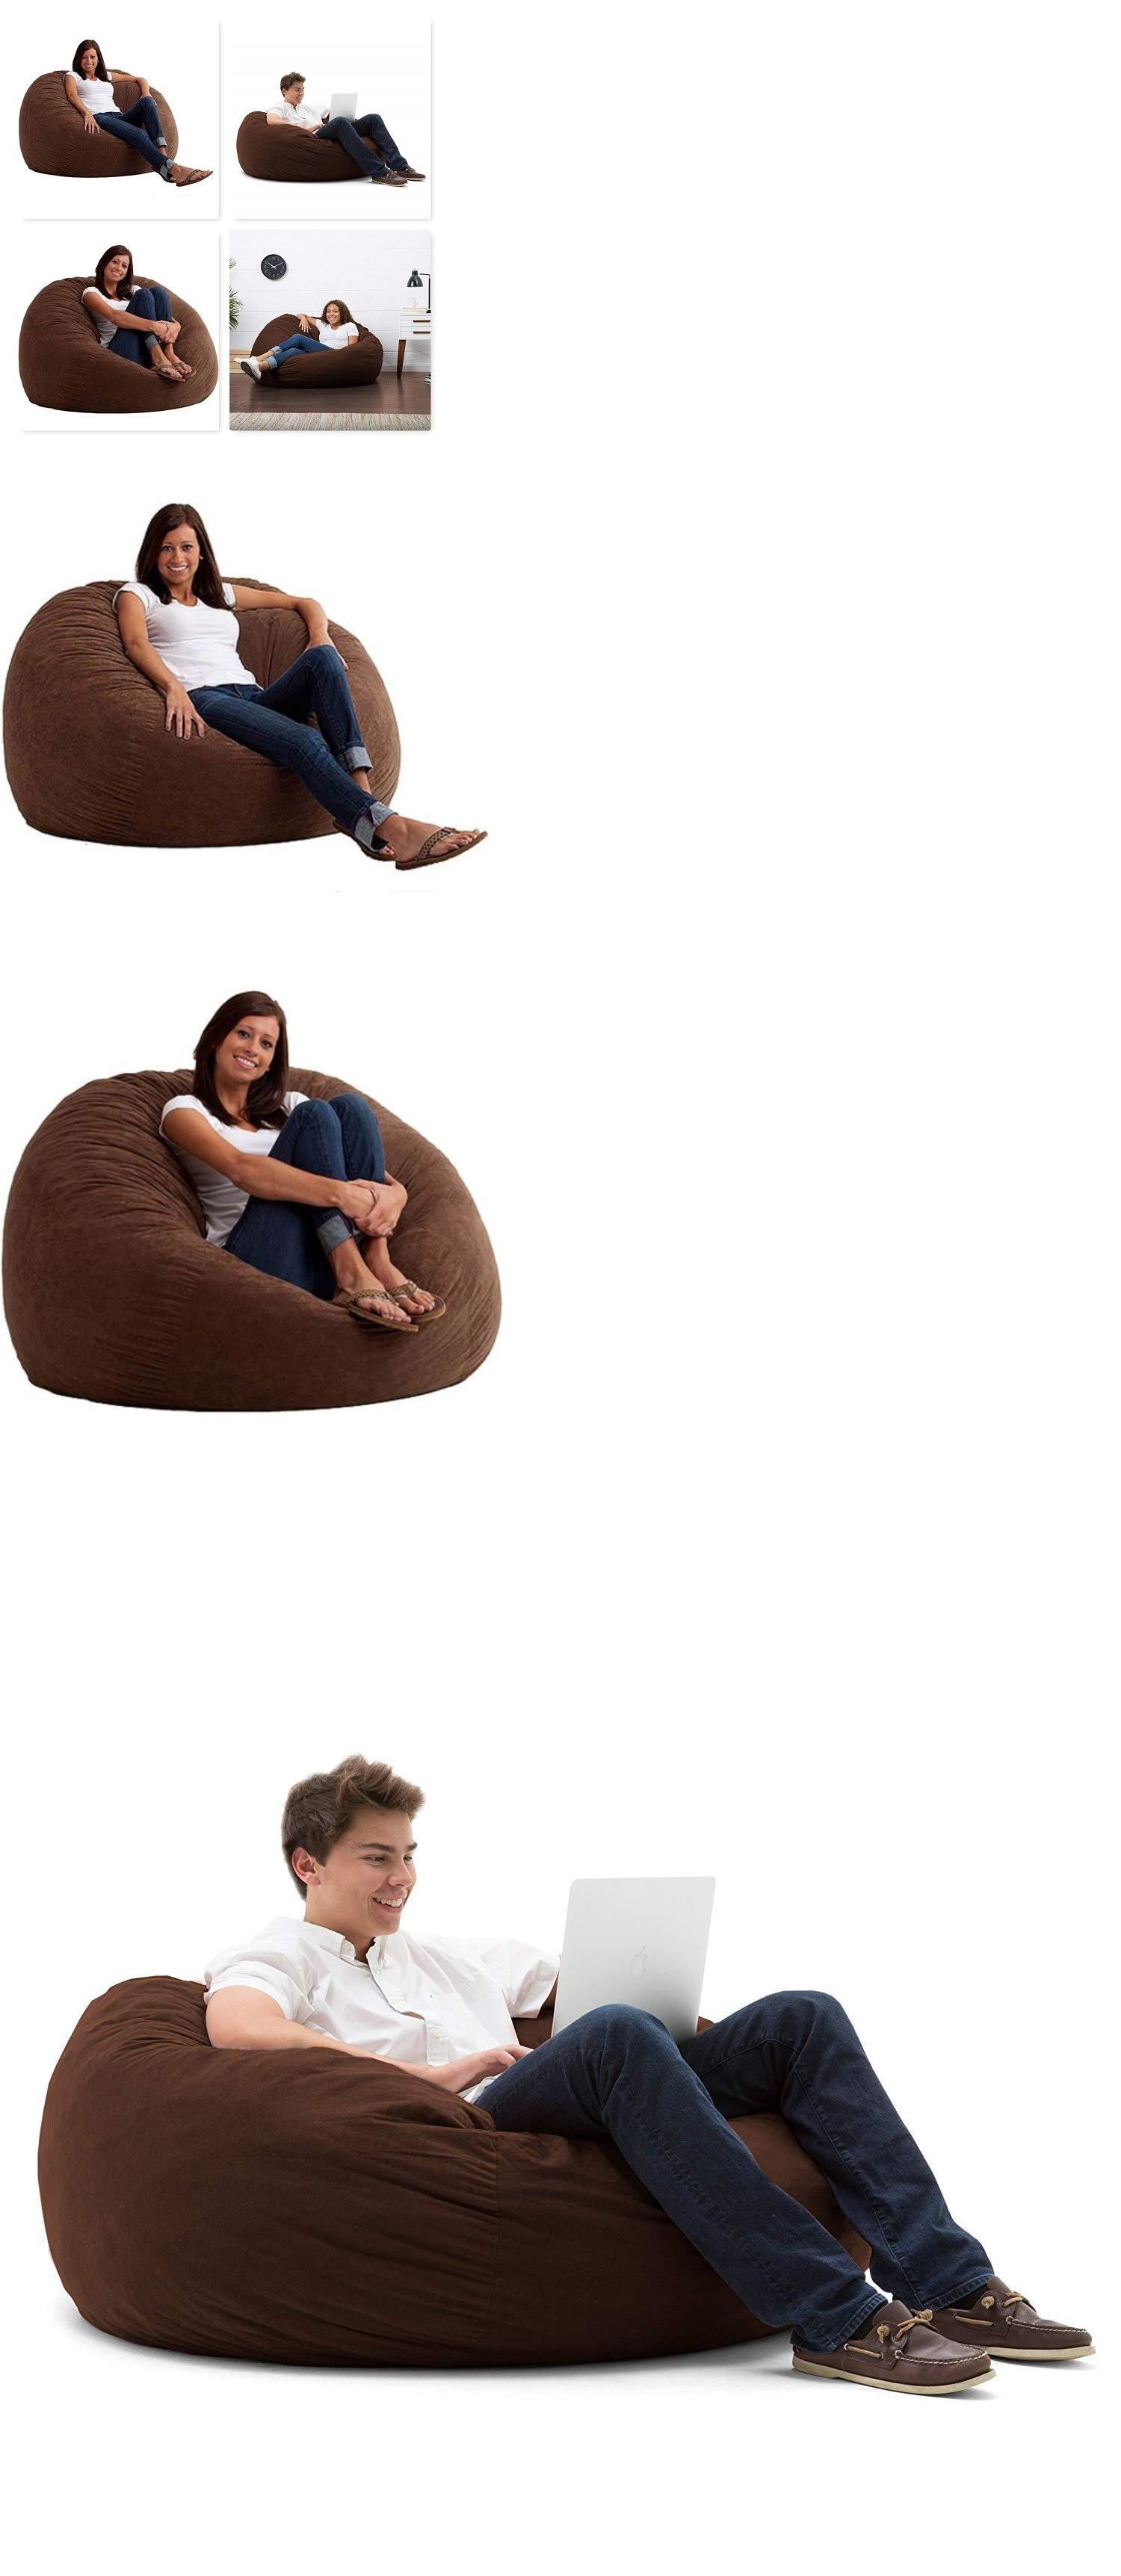 Magnificent Bean Bags And Inflatables 48319 Giant Bean Bag Chair Huge Unemploymentrelief Wooden Chair Designs For Living Room Unemploymentrelieforg